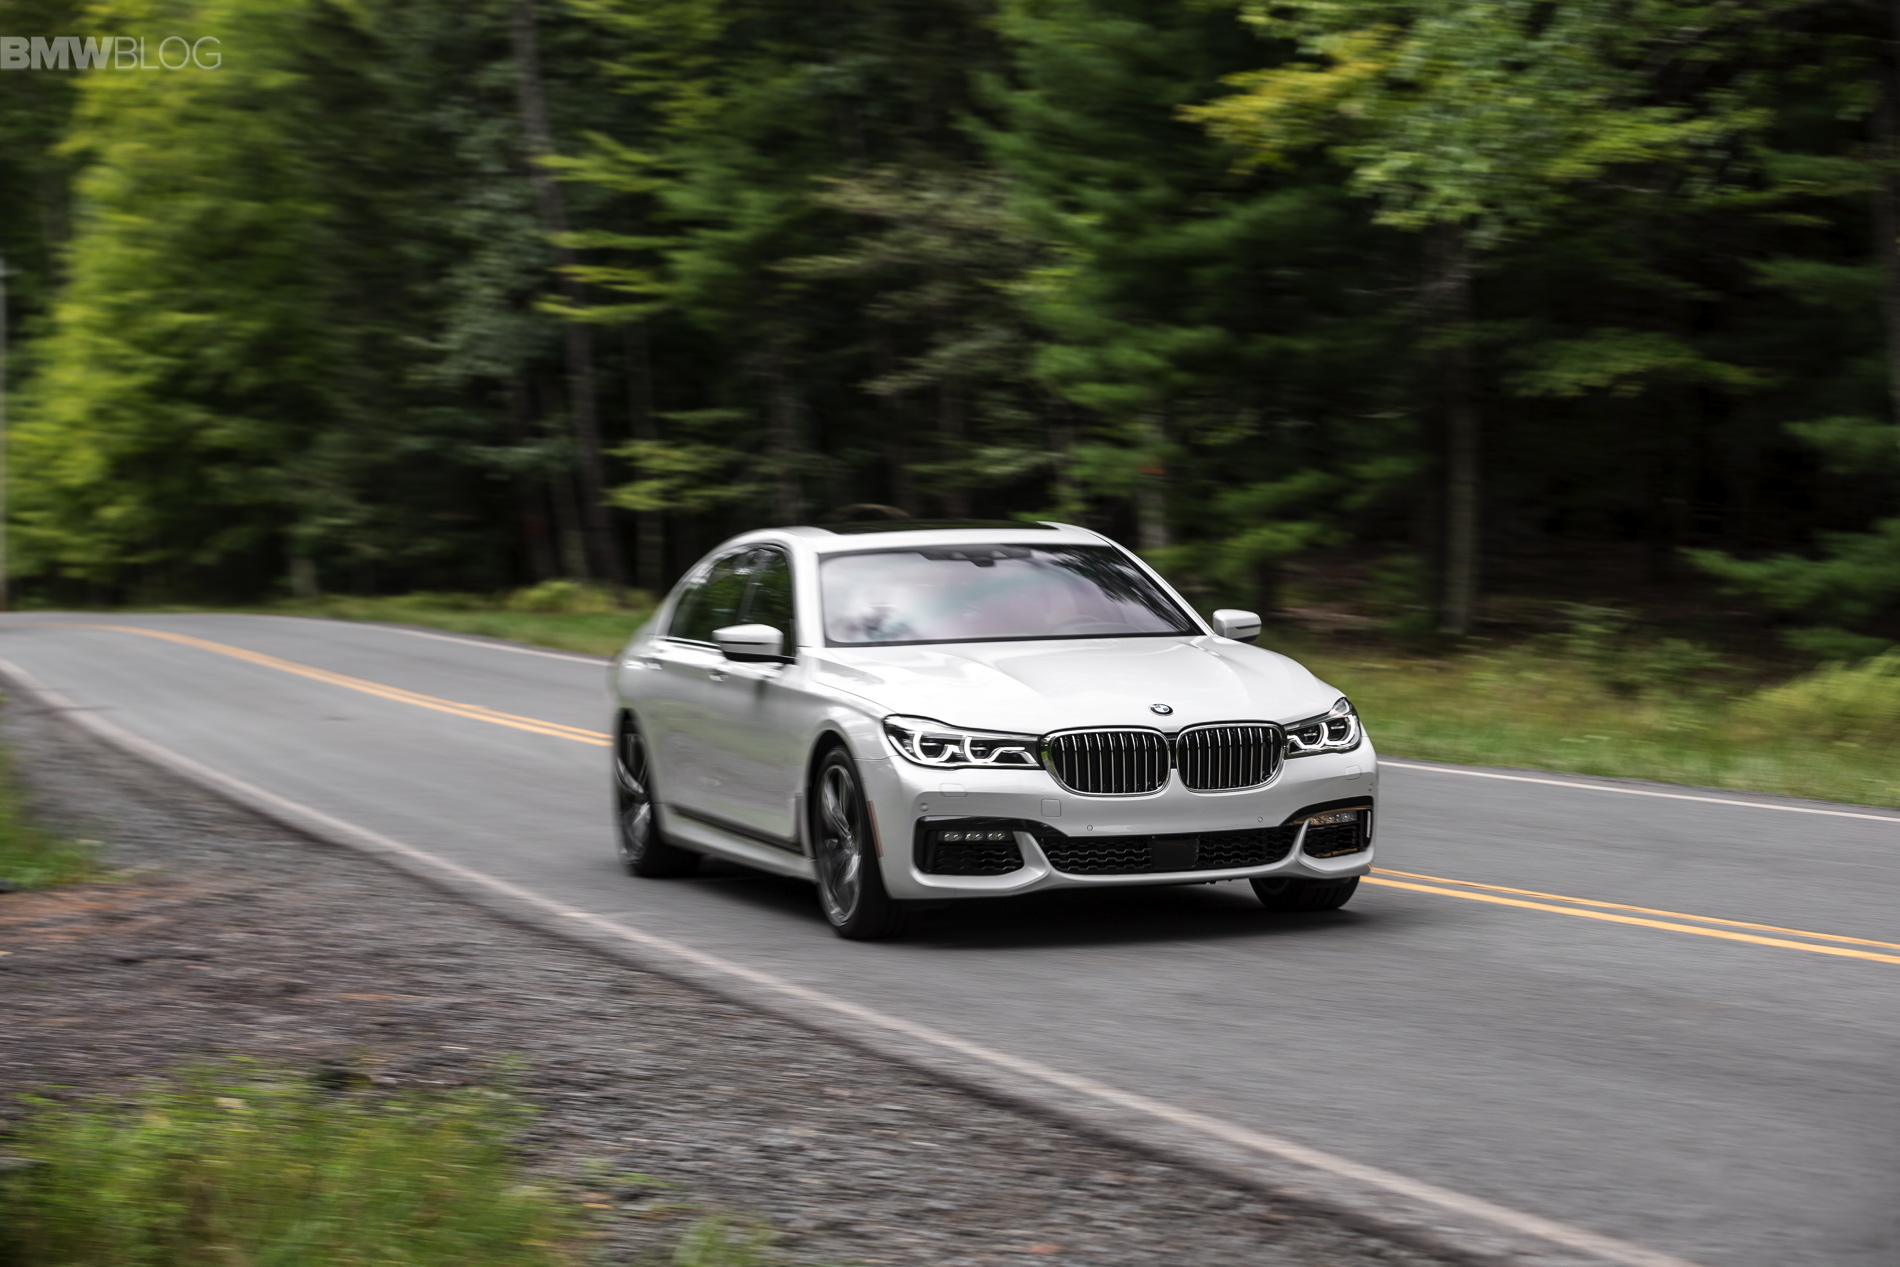 2016 bmw 7 series launch new york images 1900x 1200 79